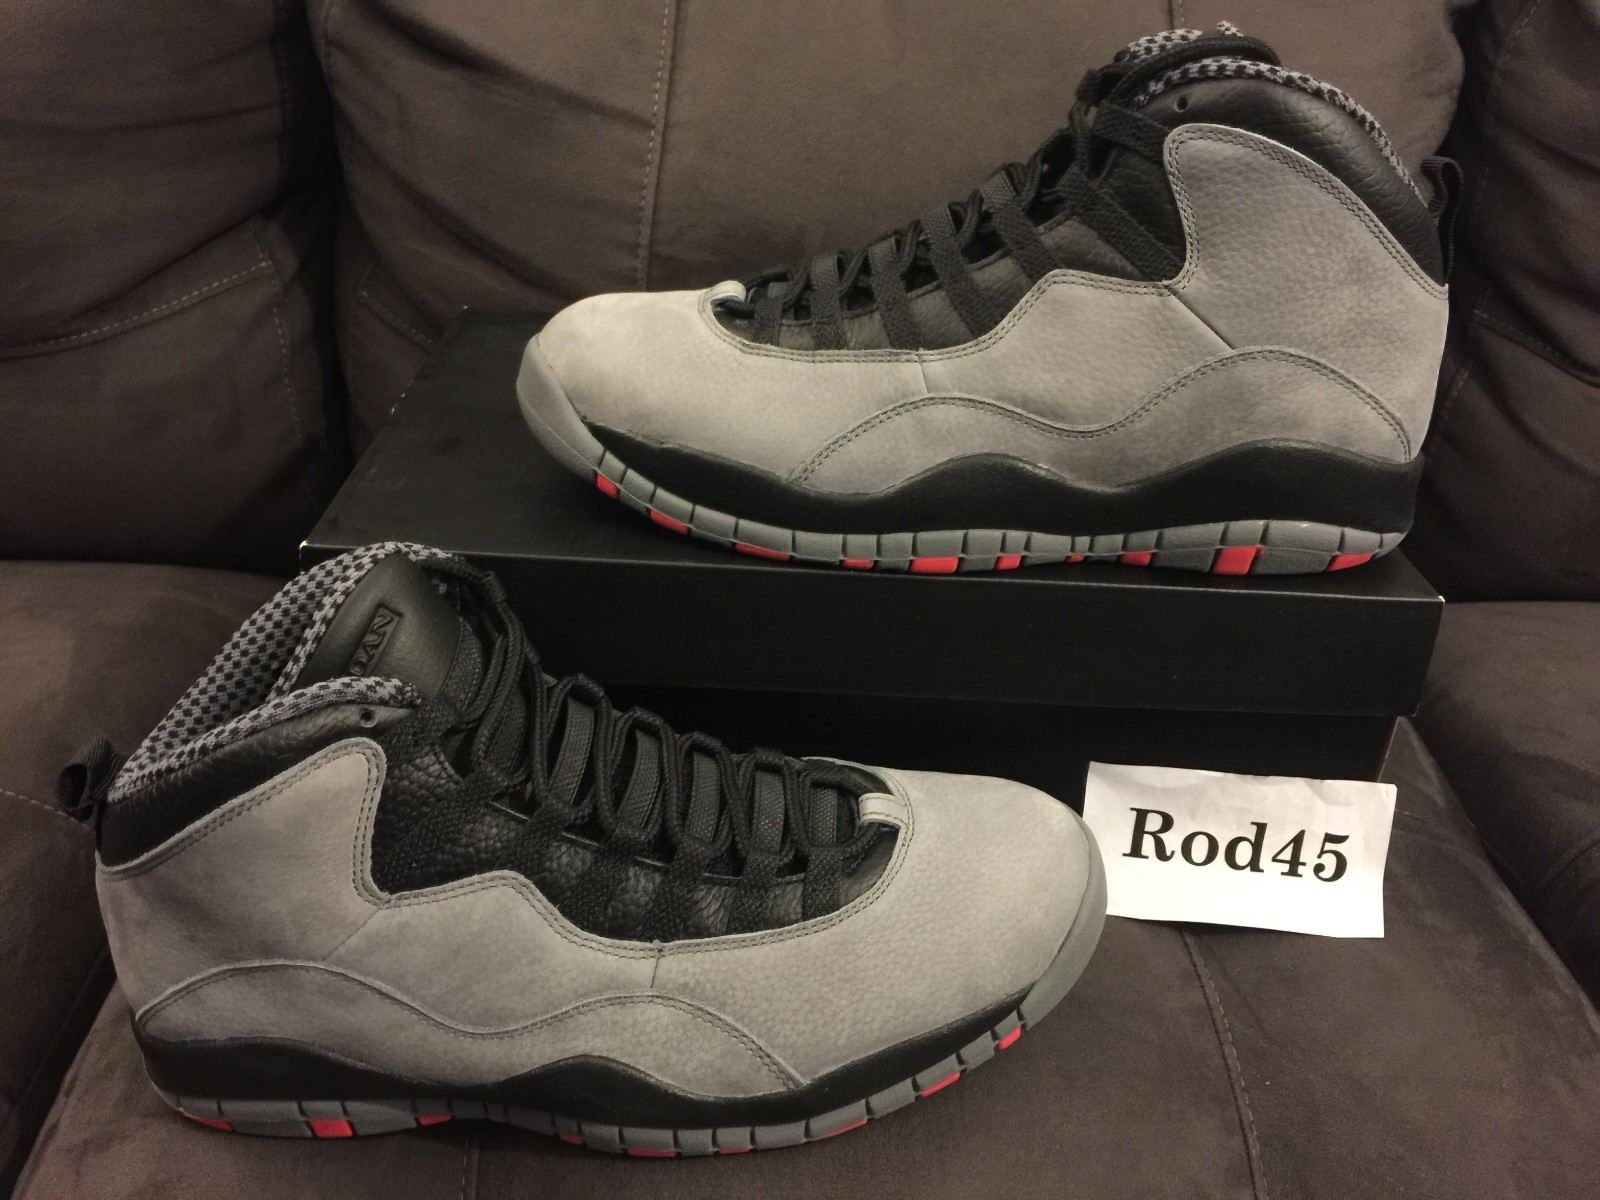 nike cool air jordan retro 10 x cool nike Gris  infrarouge noir 11 ds 575651